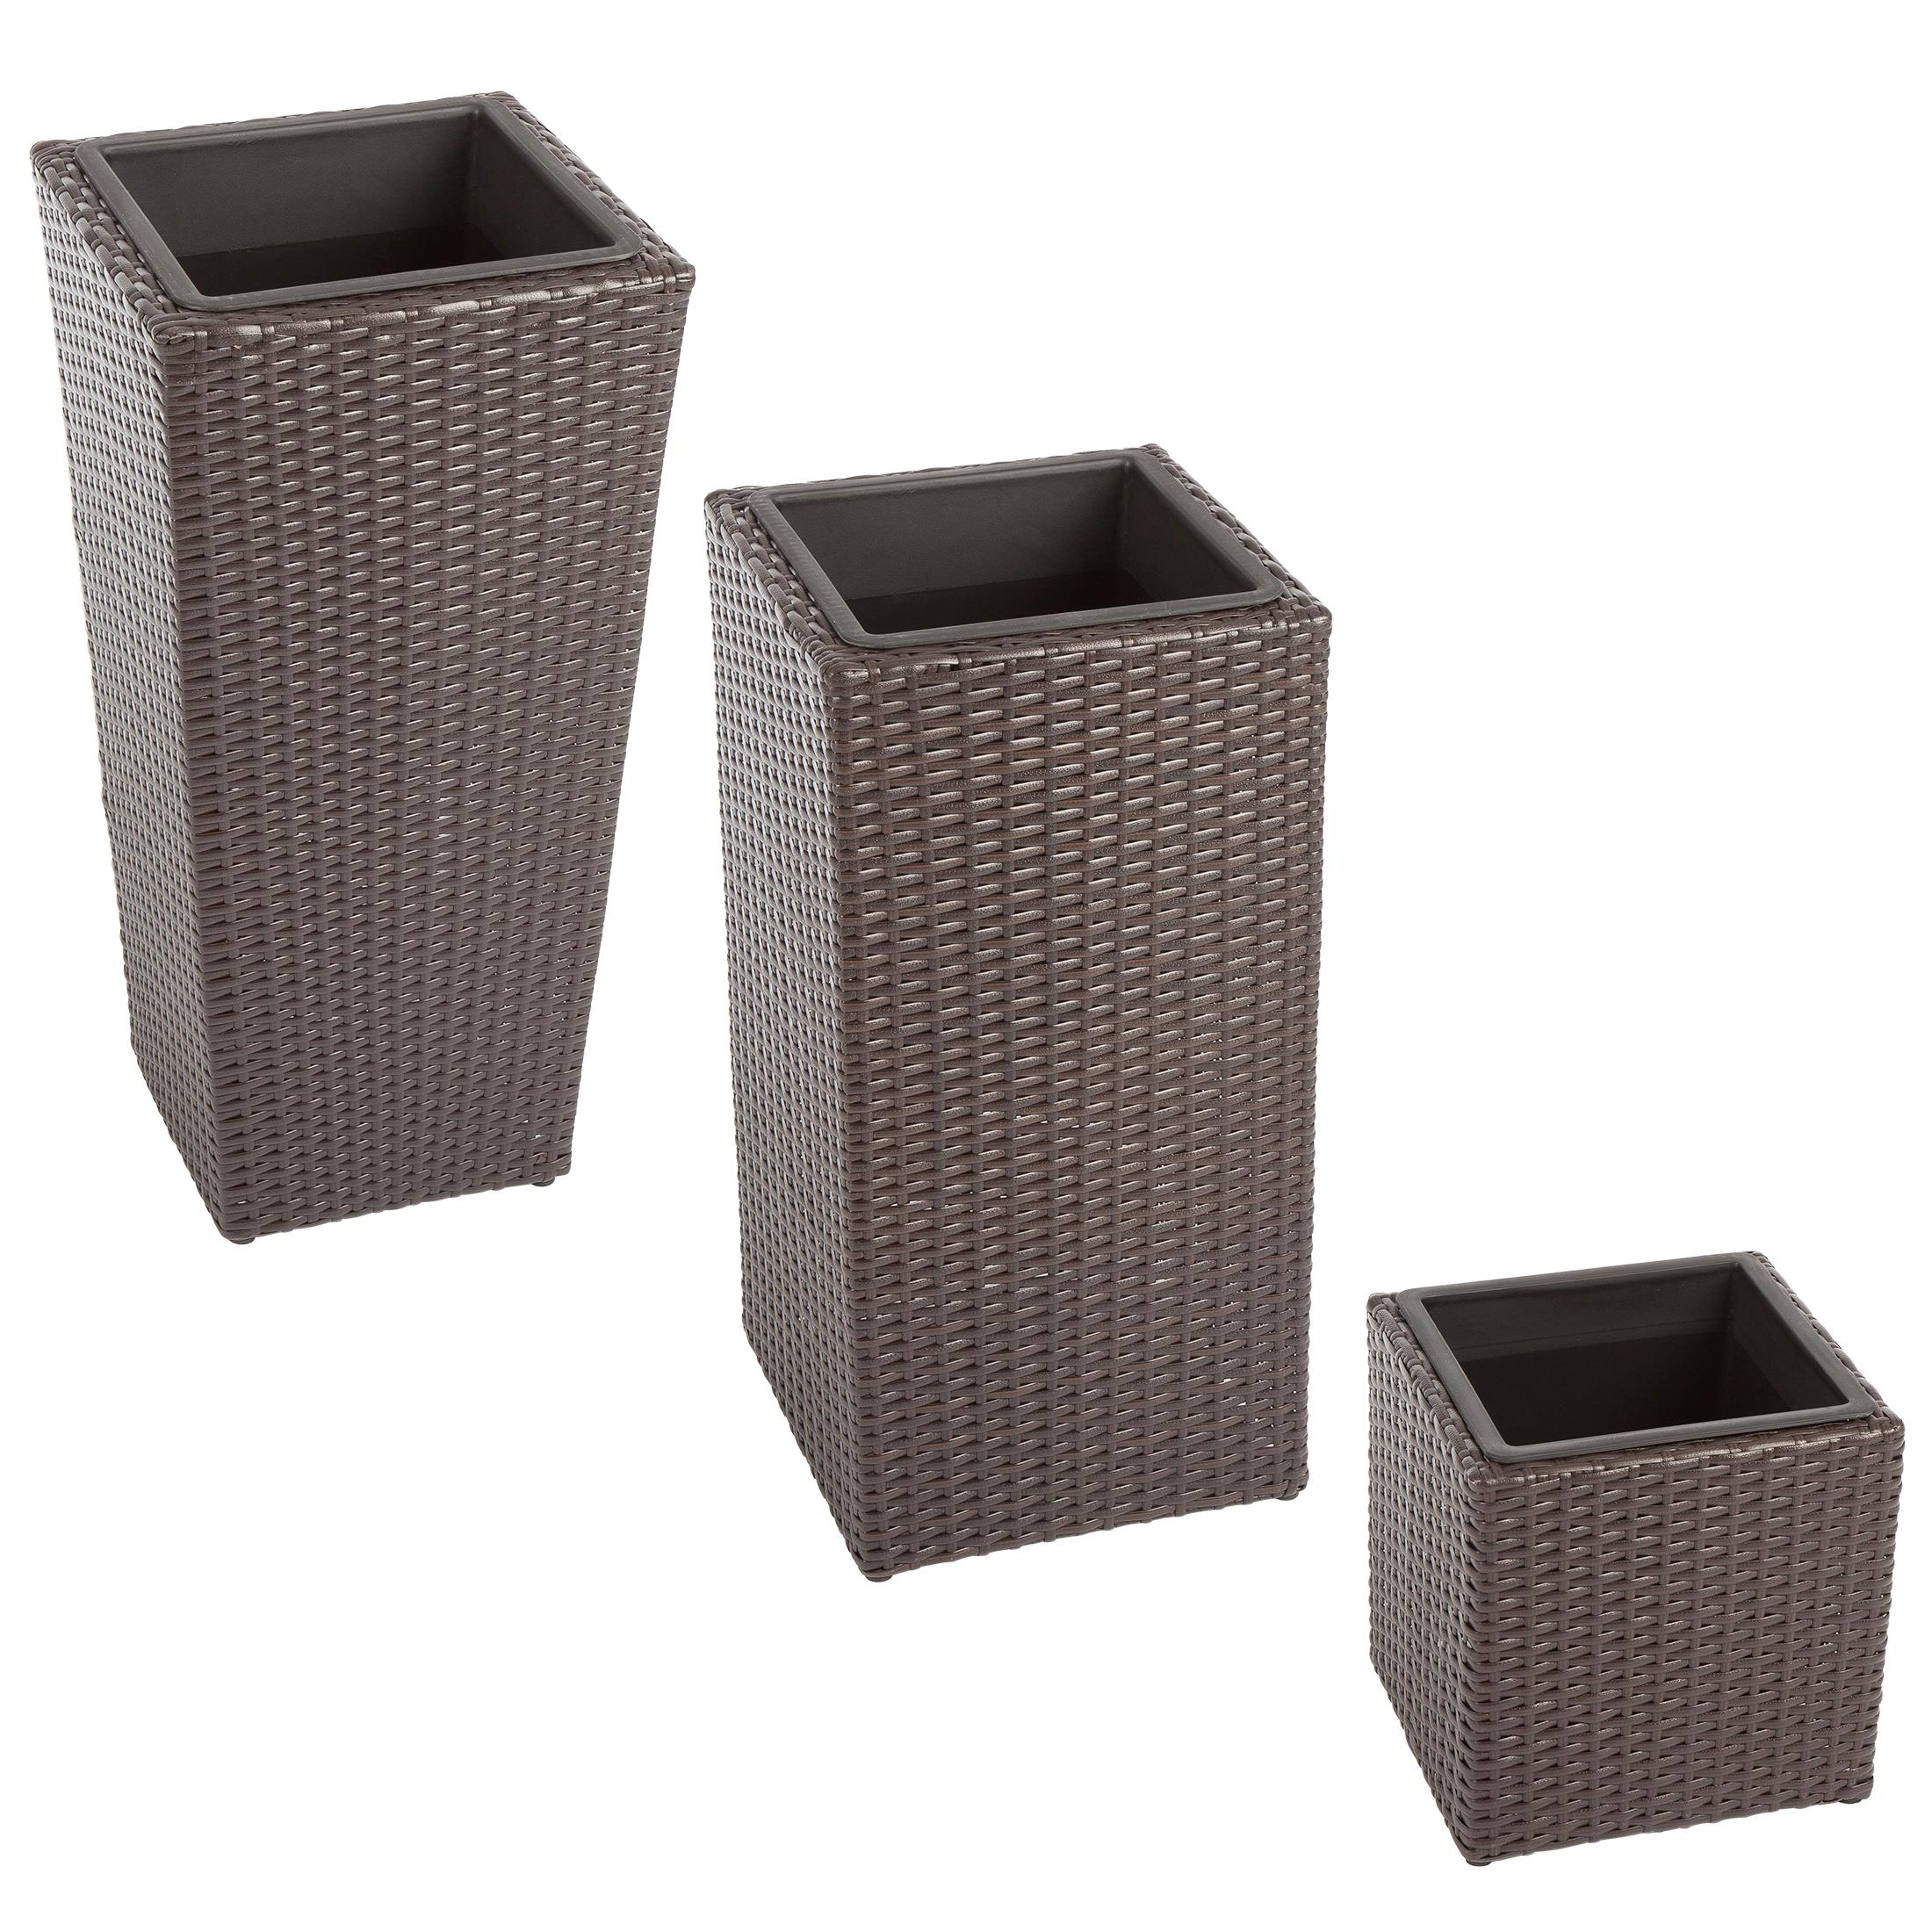 ultranatura palma series block design rattan planters. Black Bedroom Furniture Sets. Home Design Ideas